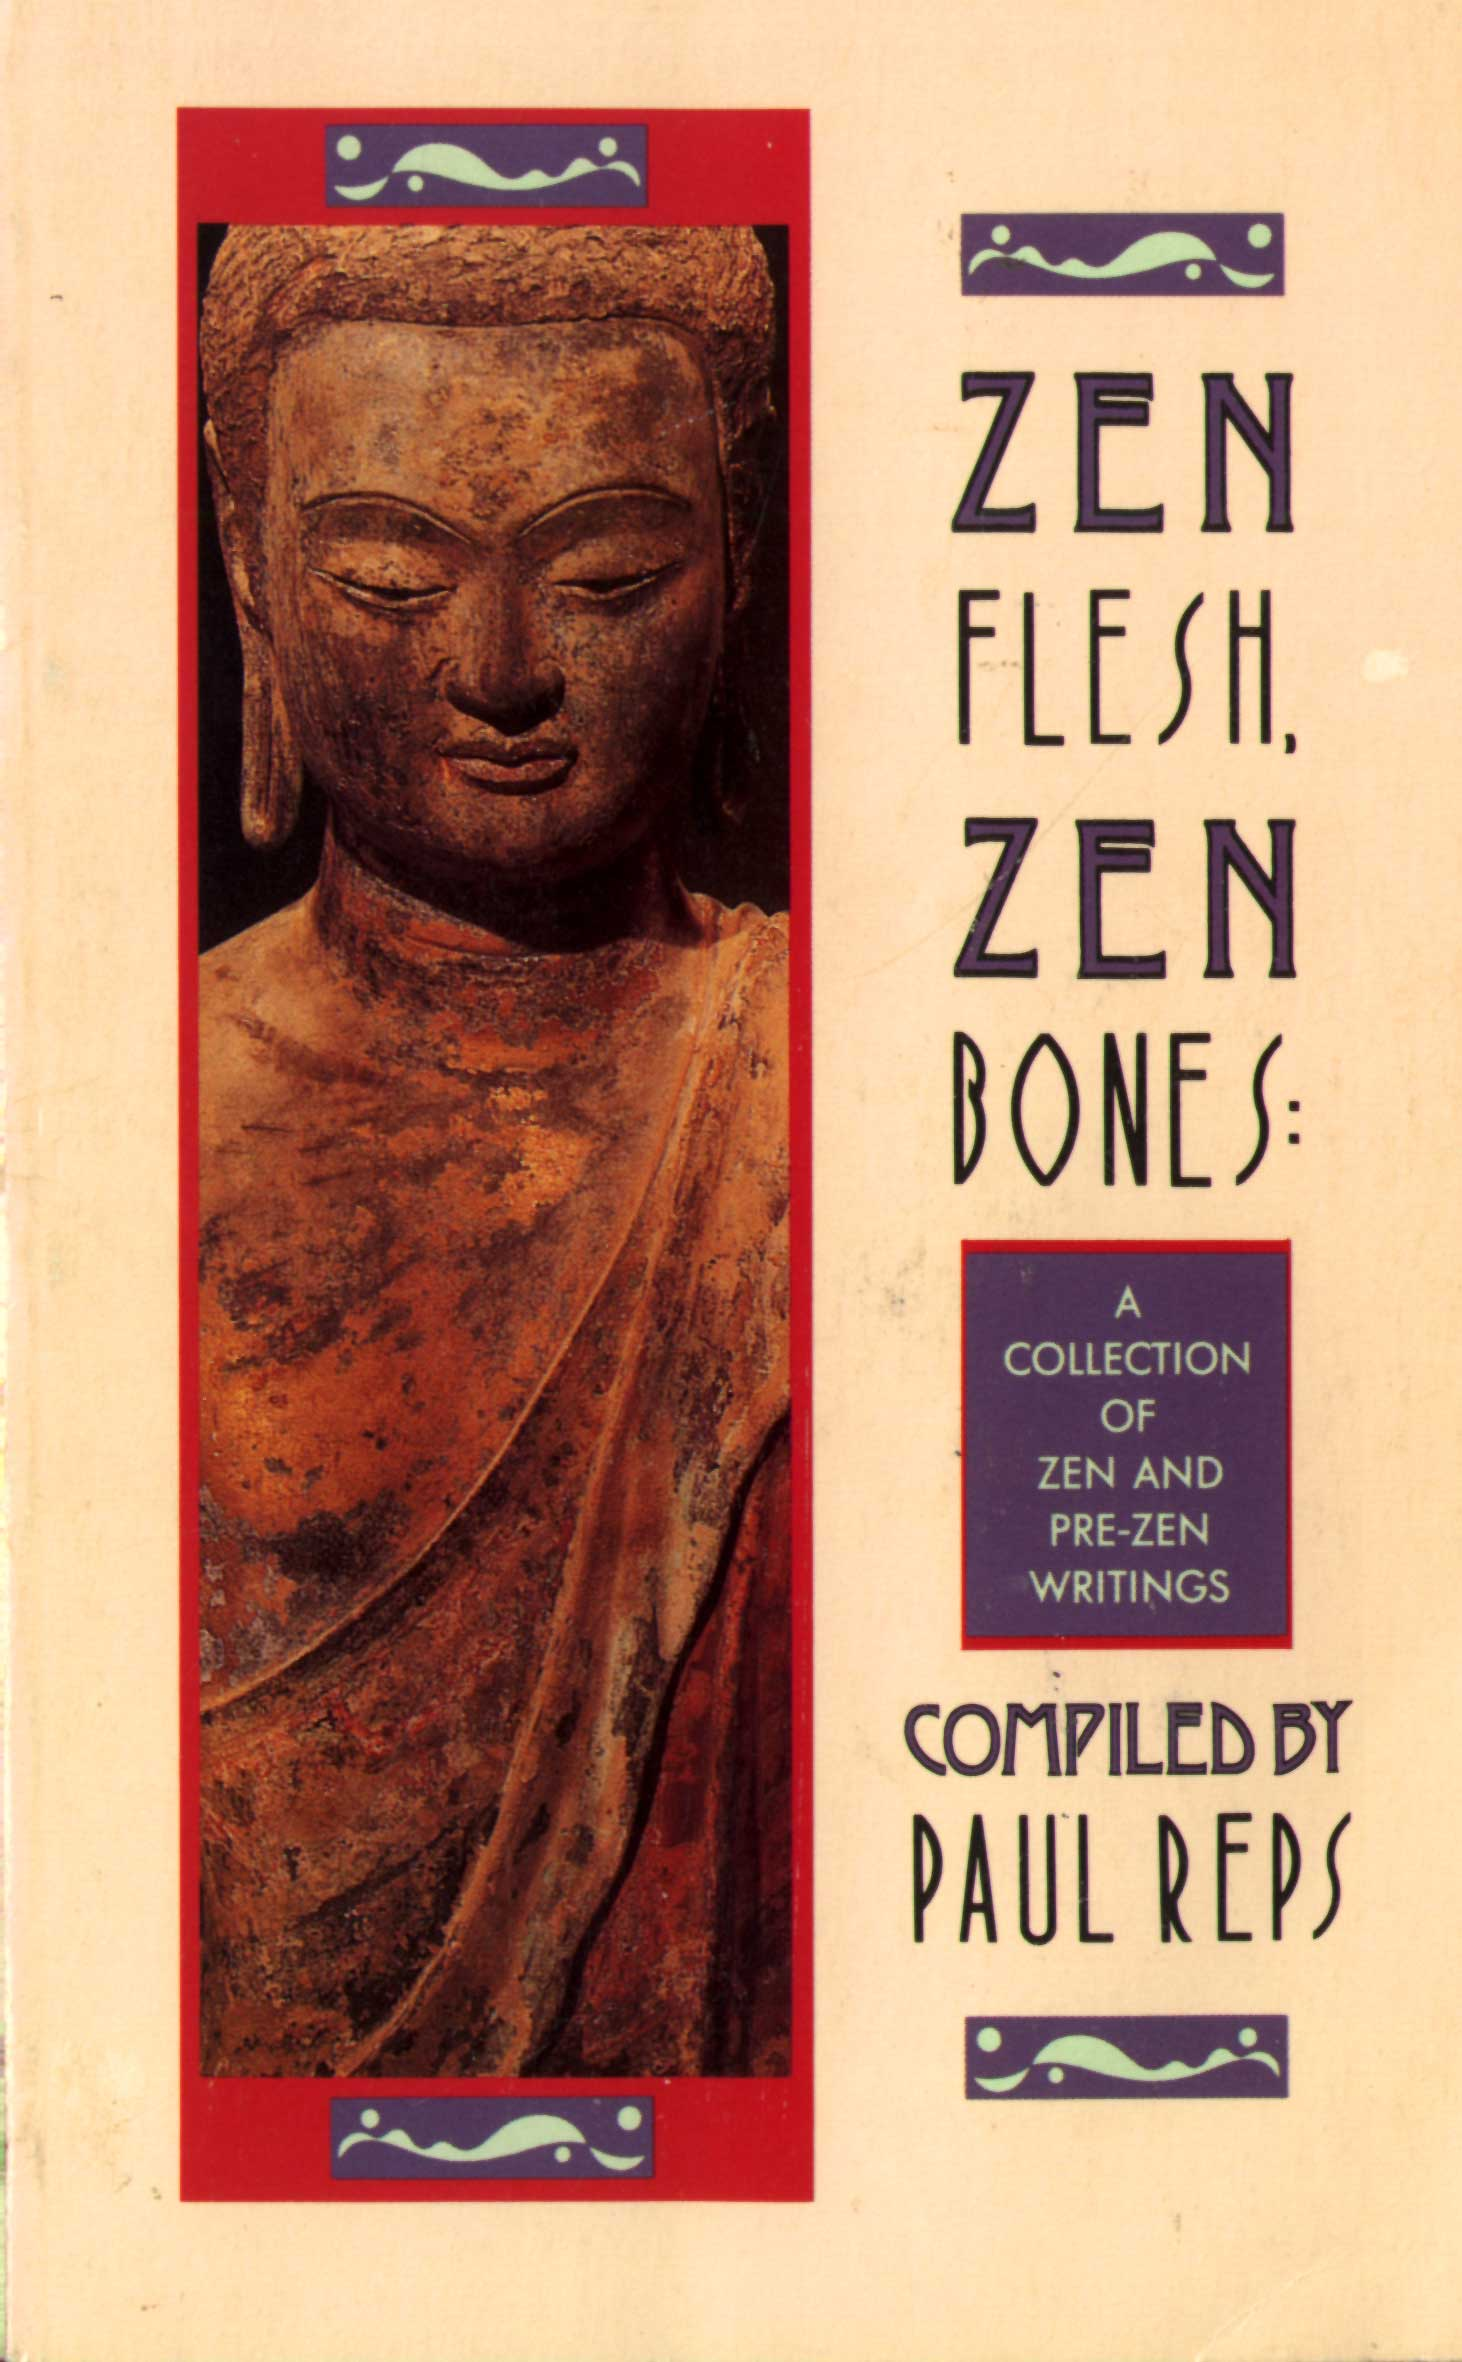 Zen Flesh, Zen Bones: A Collection of Zen and Pre-Zen, Paul Reps